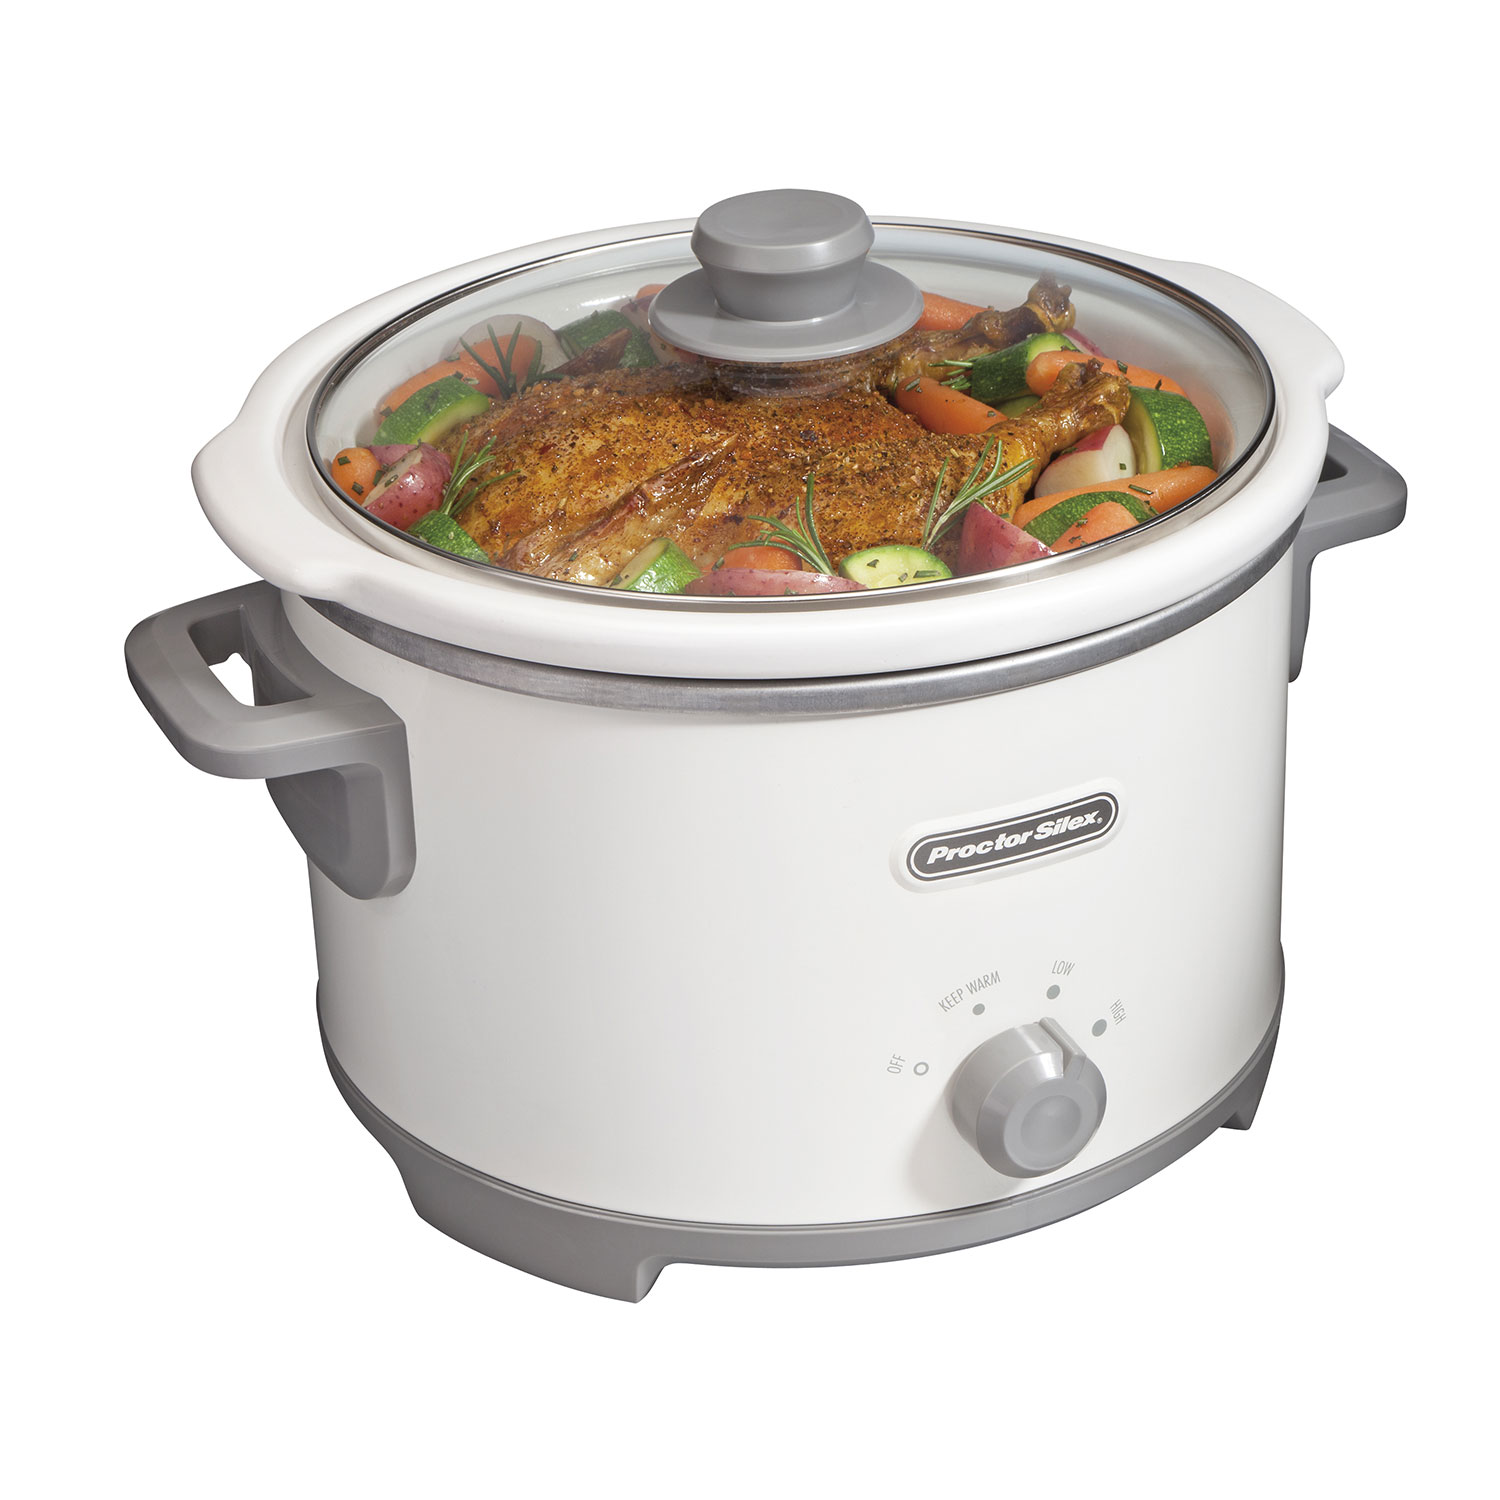 4 Quart Slow Cooker (white)-33042 Small Size